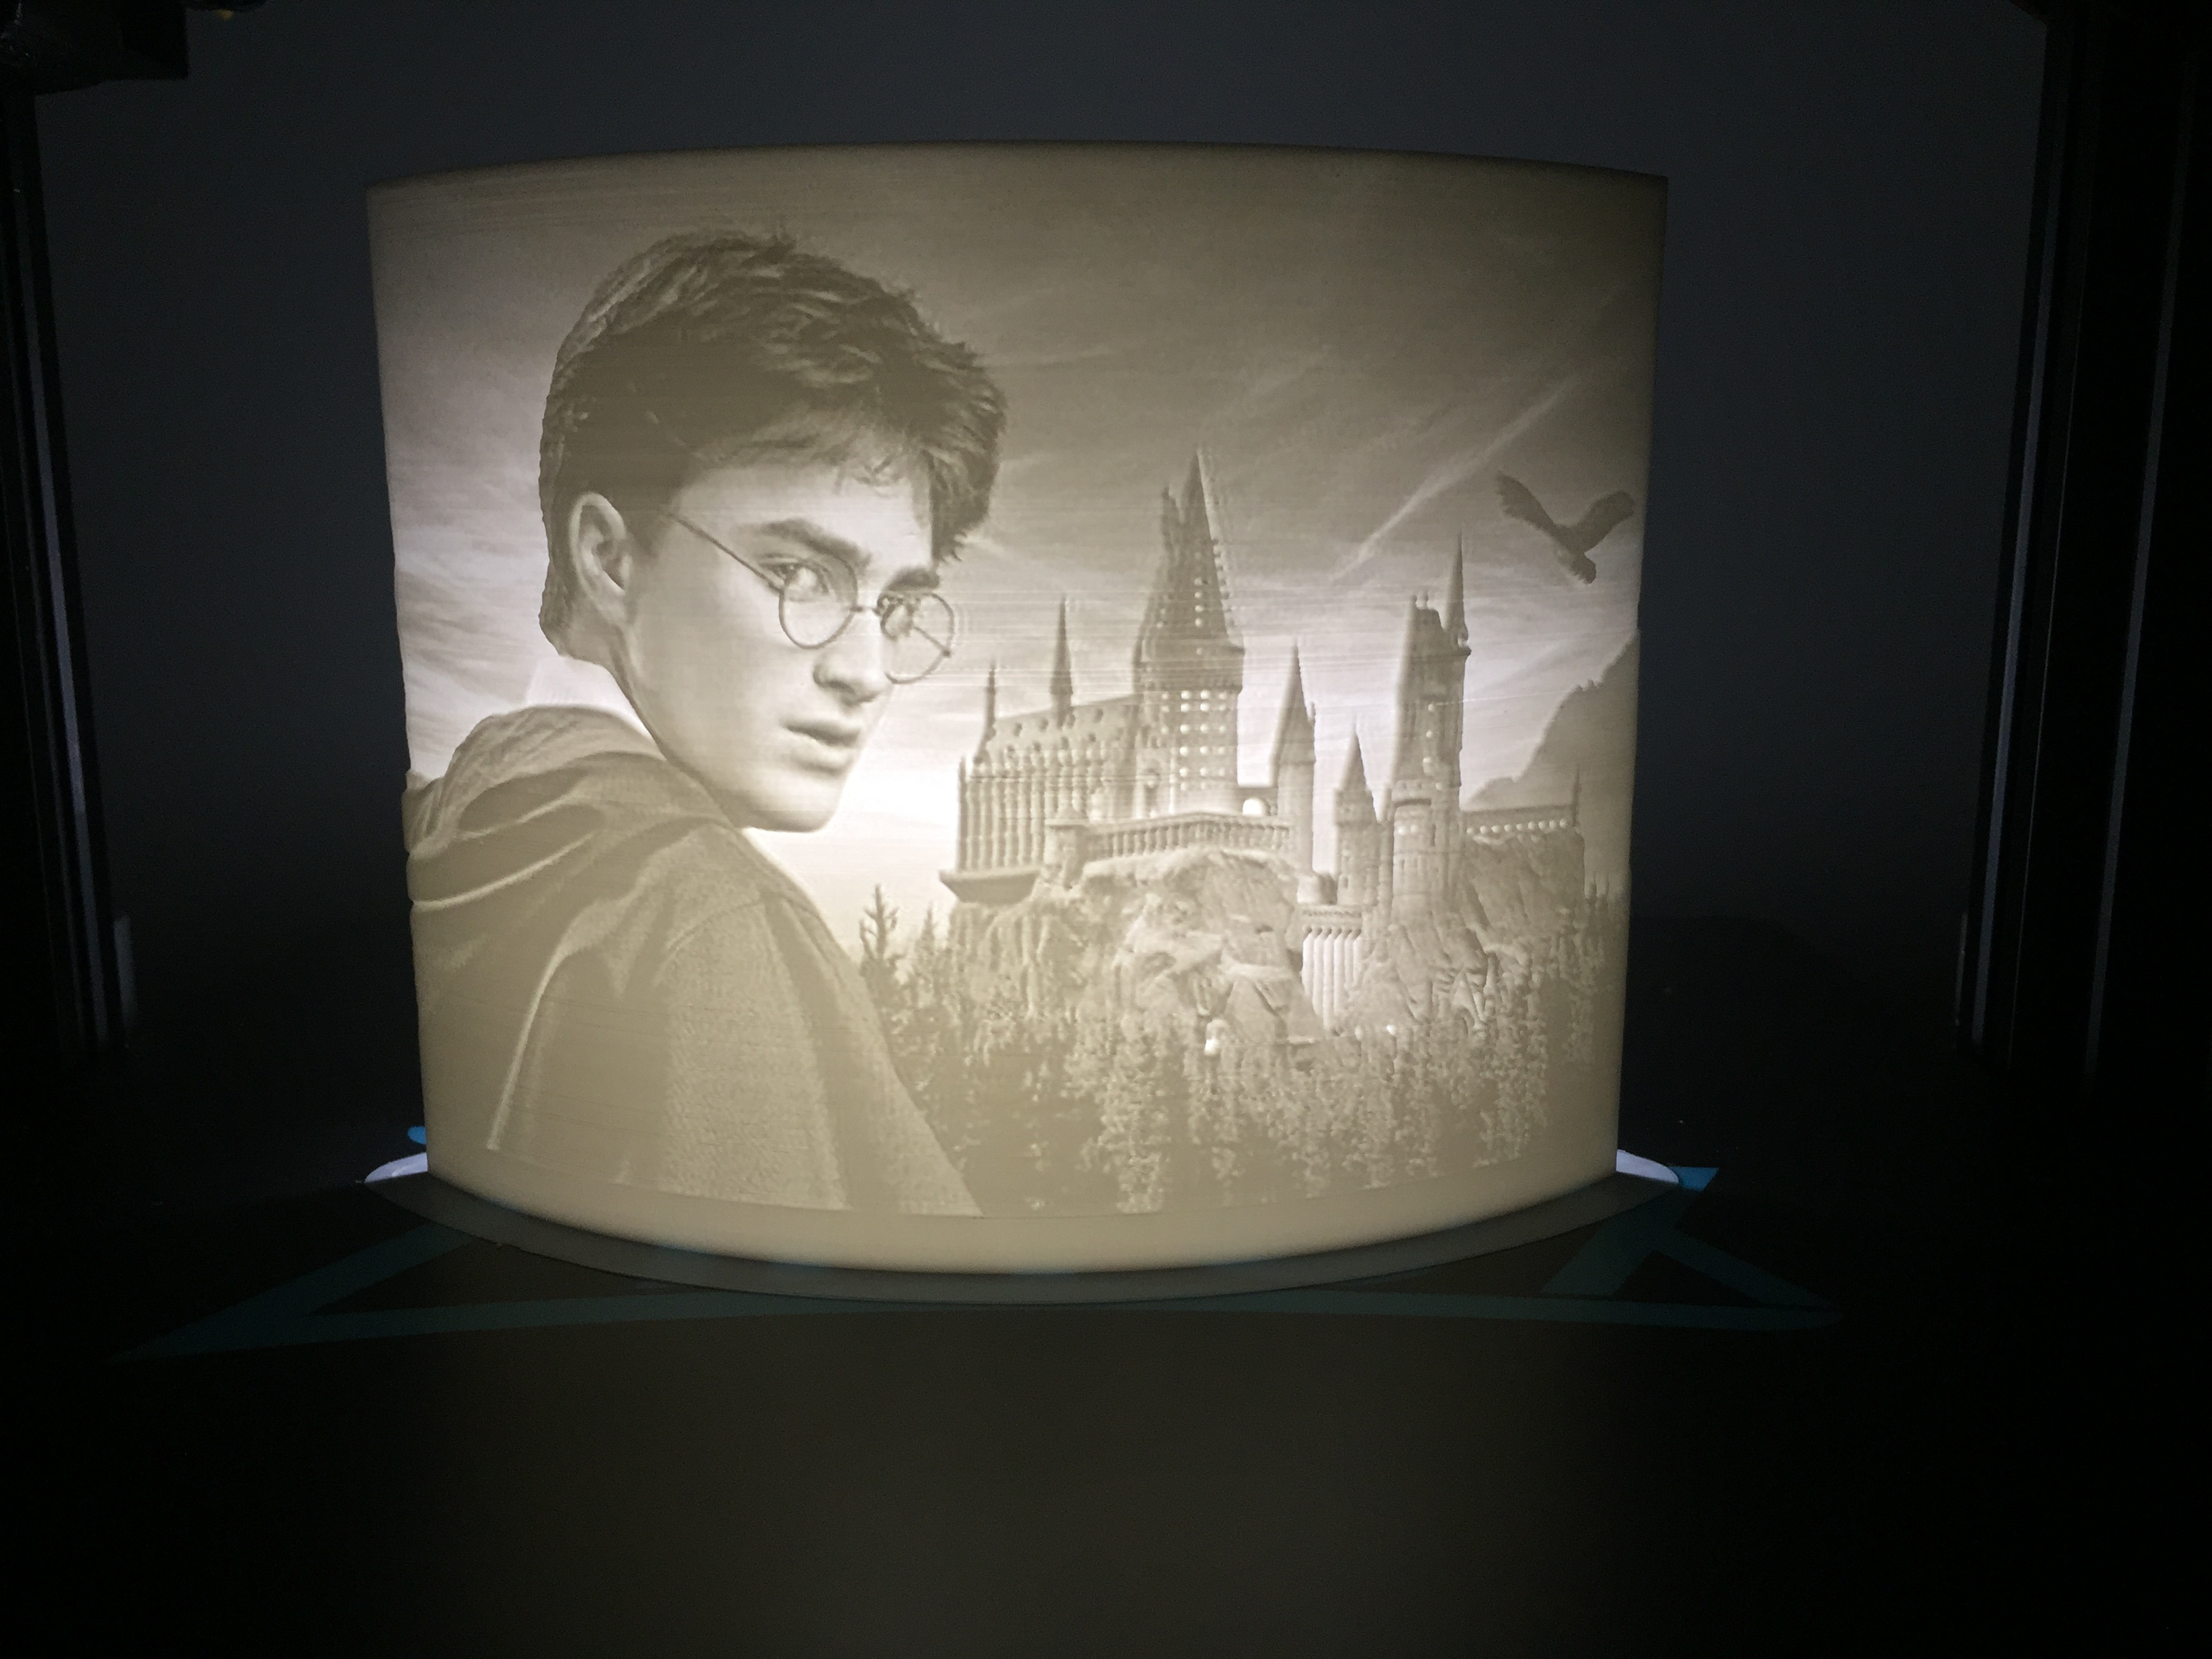 IMG_5276.JPG Download free STL file Lithophanie Harry Potter • 3D printer model, laurentpruvot59